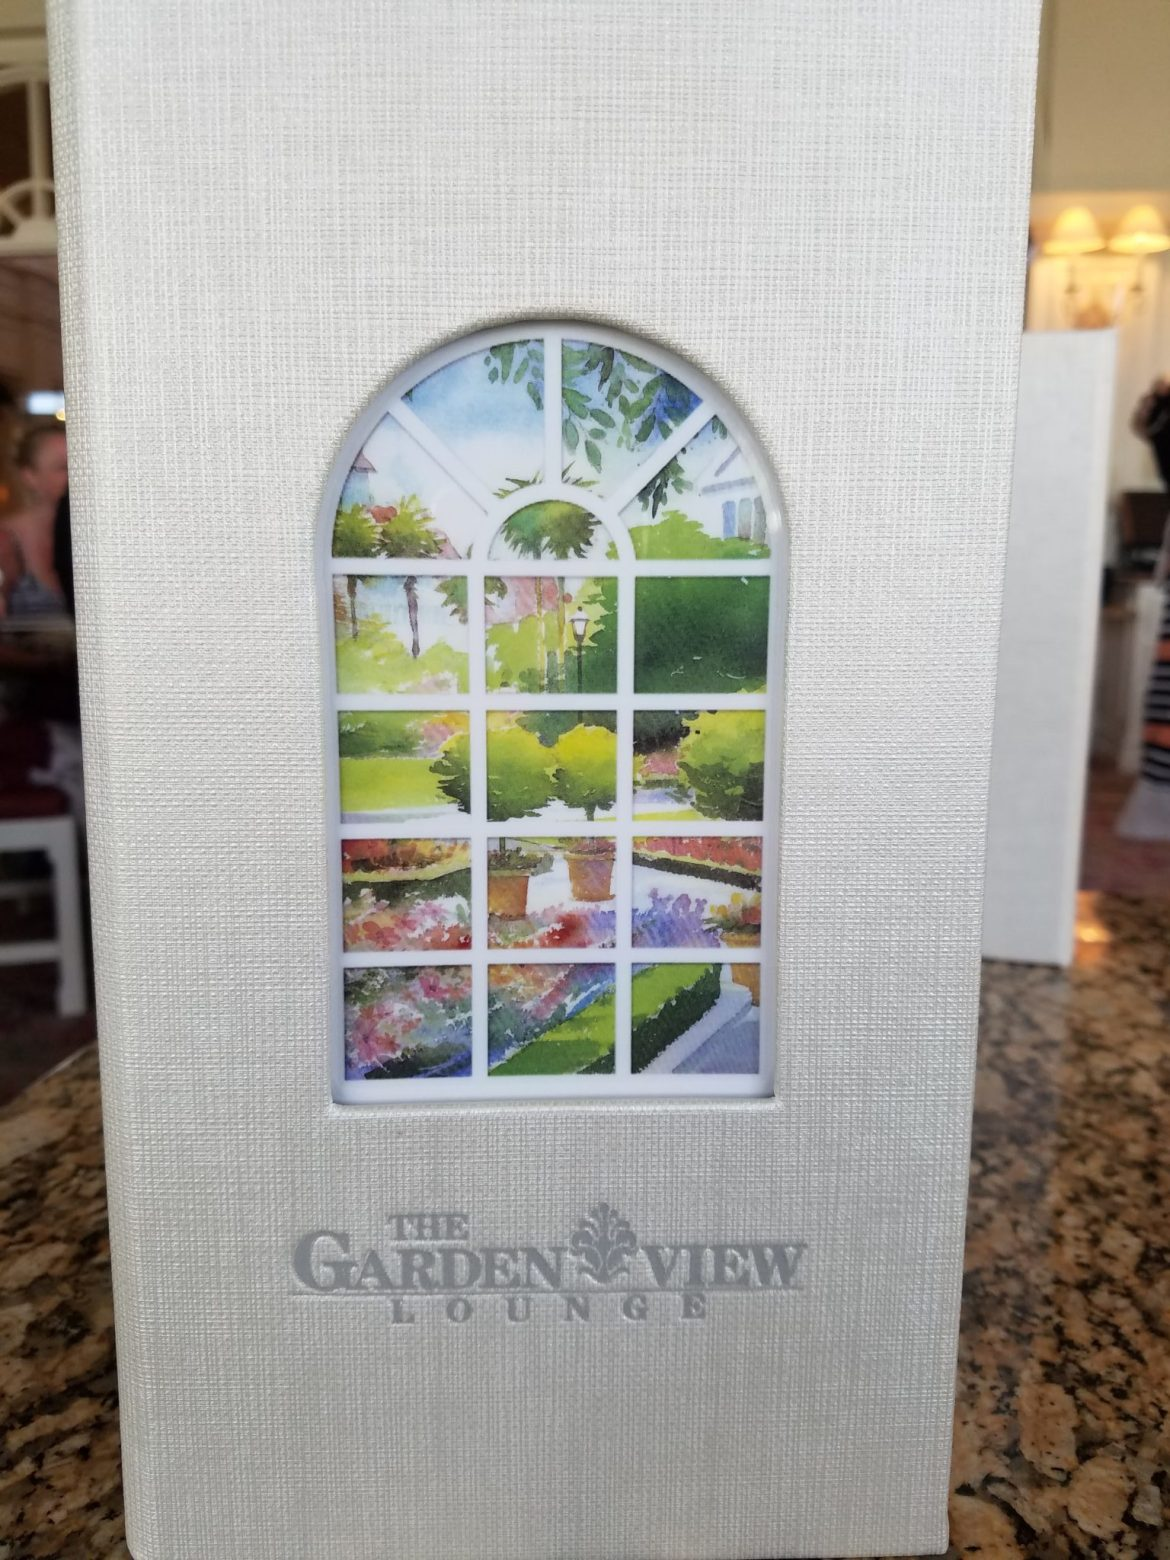 The Grand Floridian's Garden View Lounge Afternoon Tea Review